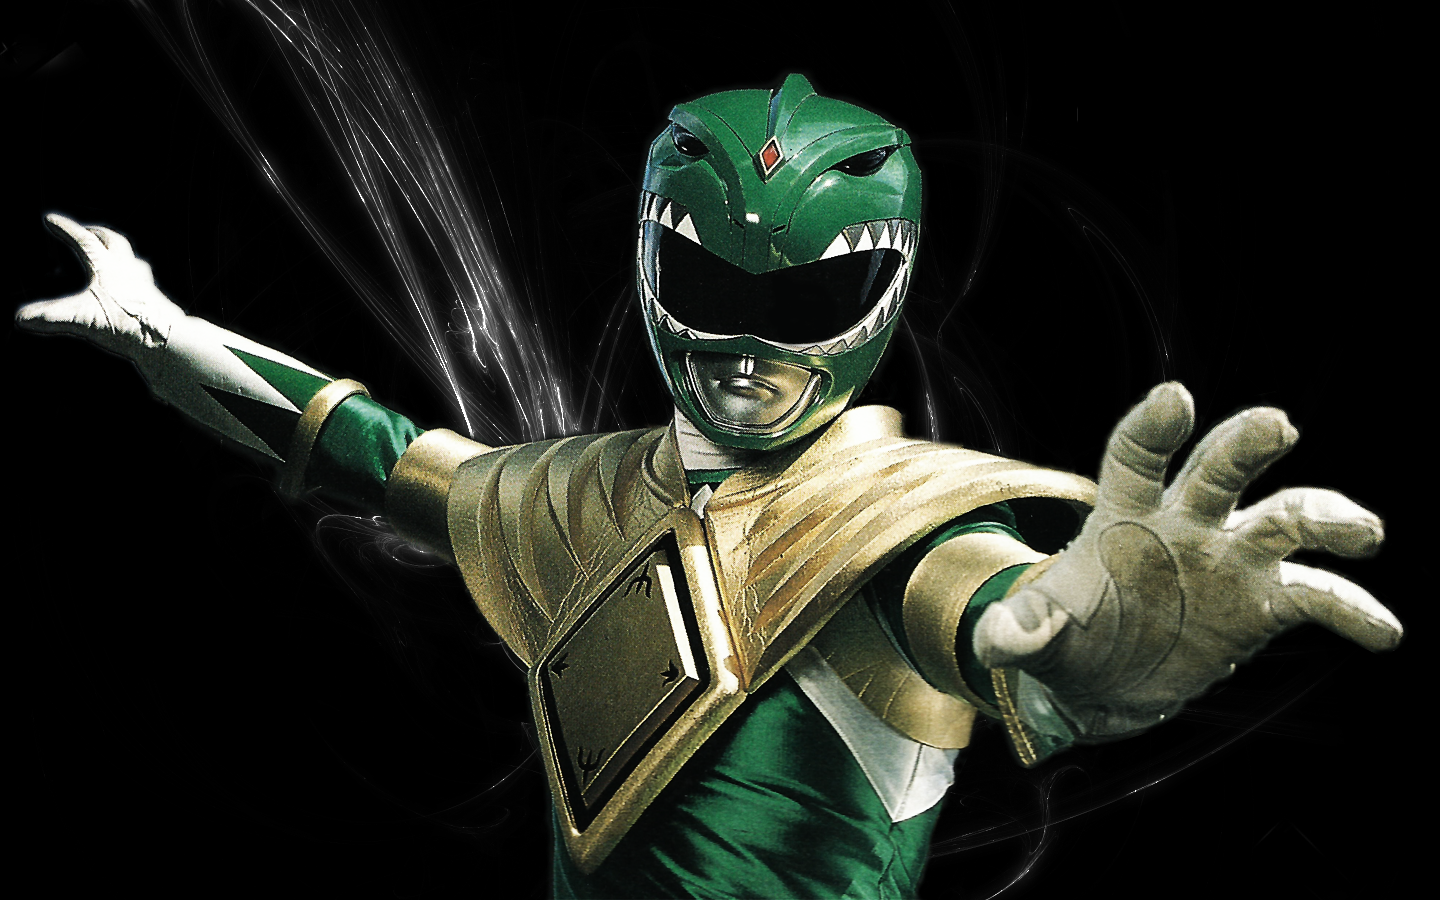 http://3.bp.blogspot.com/-qy7wE66_WIQ/TcfwD359ozI/AAAAAAAABOY/ttzHdrwYav0/s1600/green_ranger_wallpaper1_by_shogun86-d374wg9.png